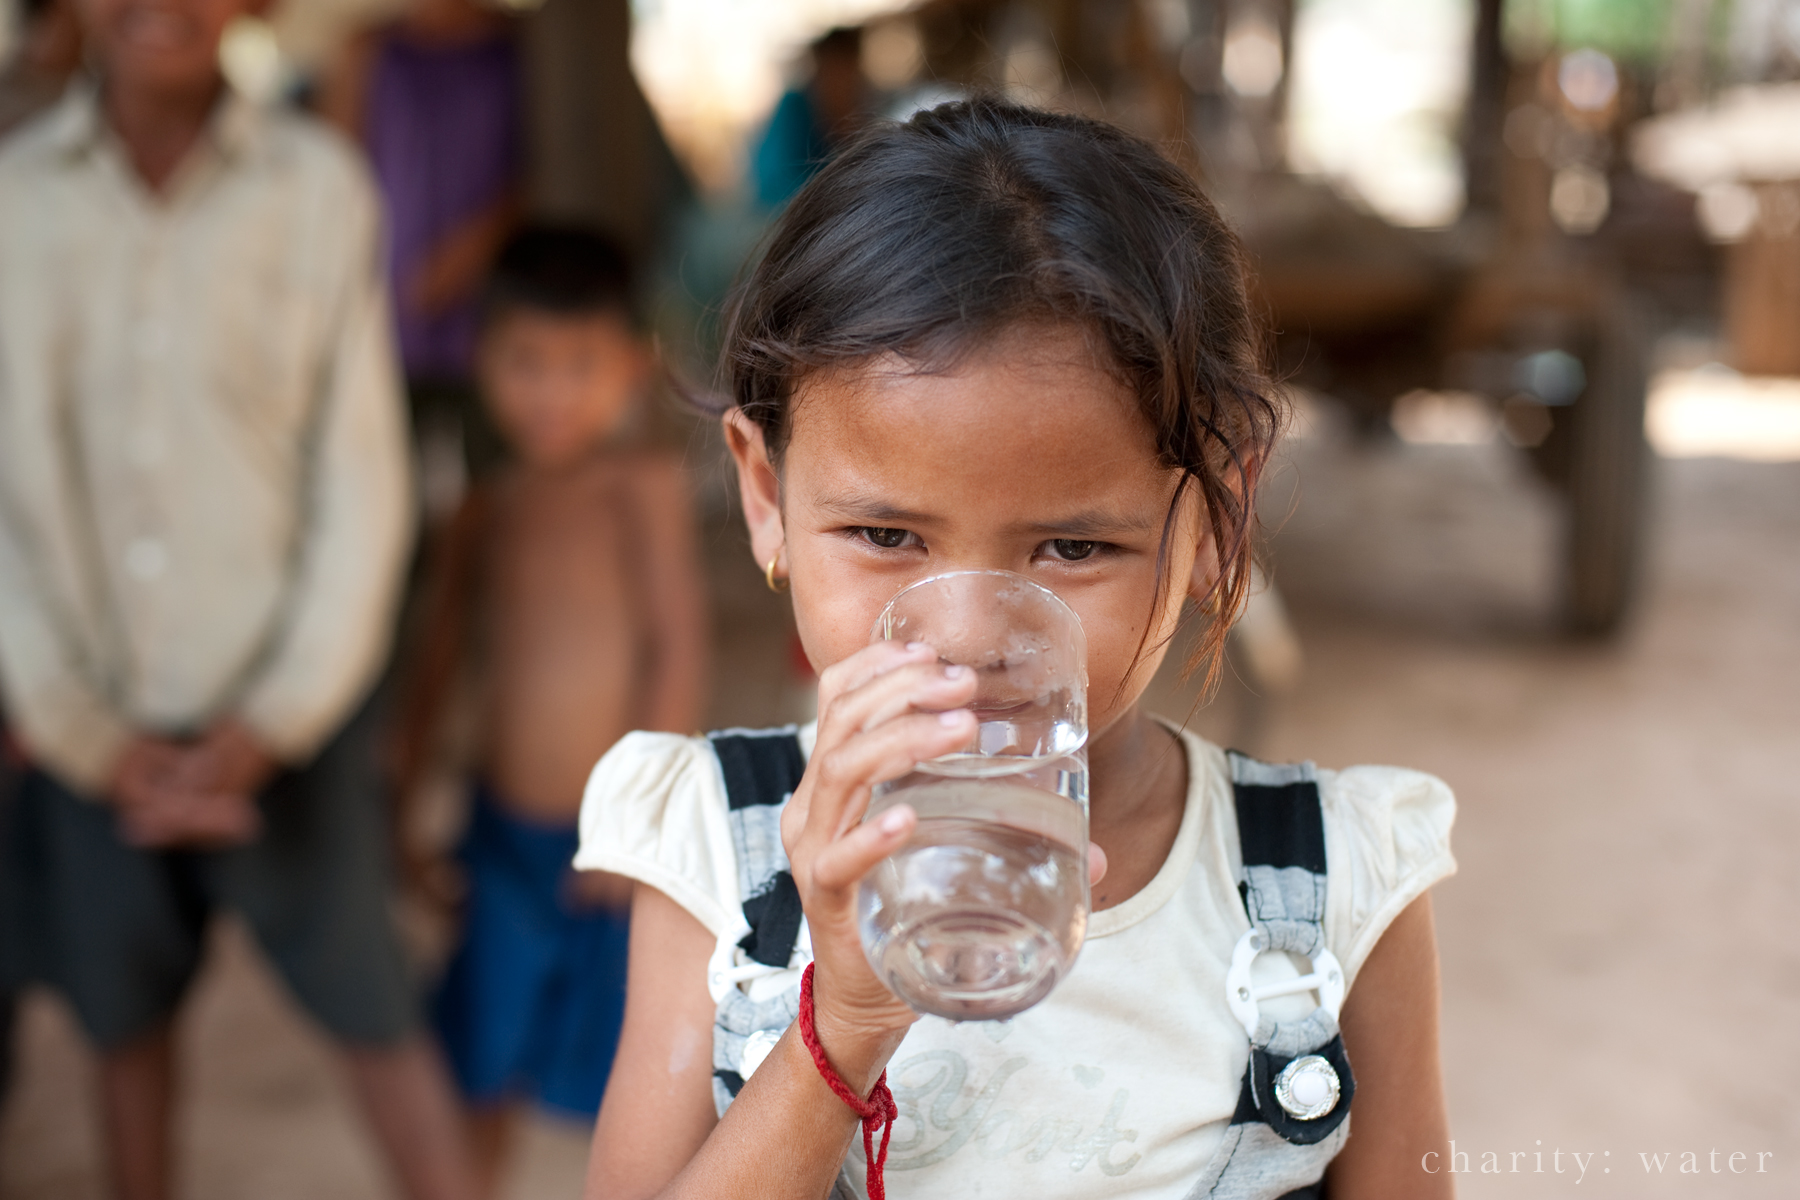 charity water 6 reviews of charity water i love charity: water i first came across charity: water through a simple google search its mission, solution, and approach caught my eyes it is a non-profit organization bringing clean, safe drinking water to.